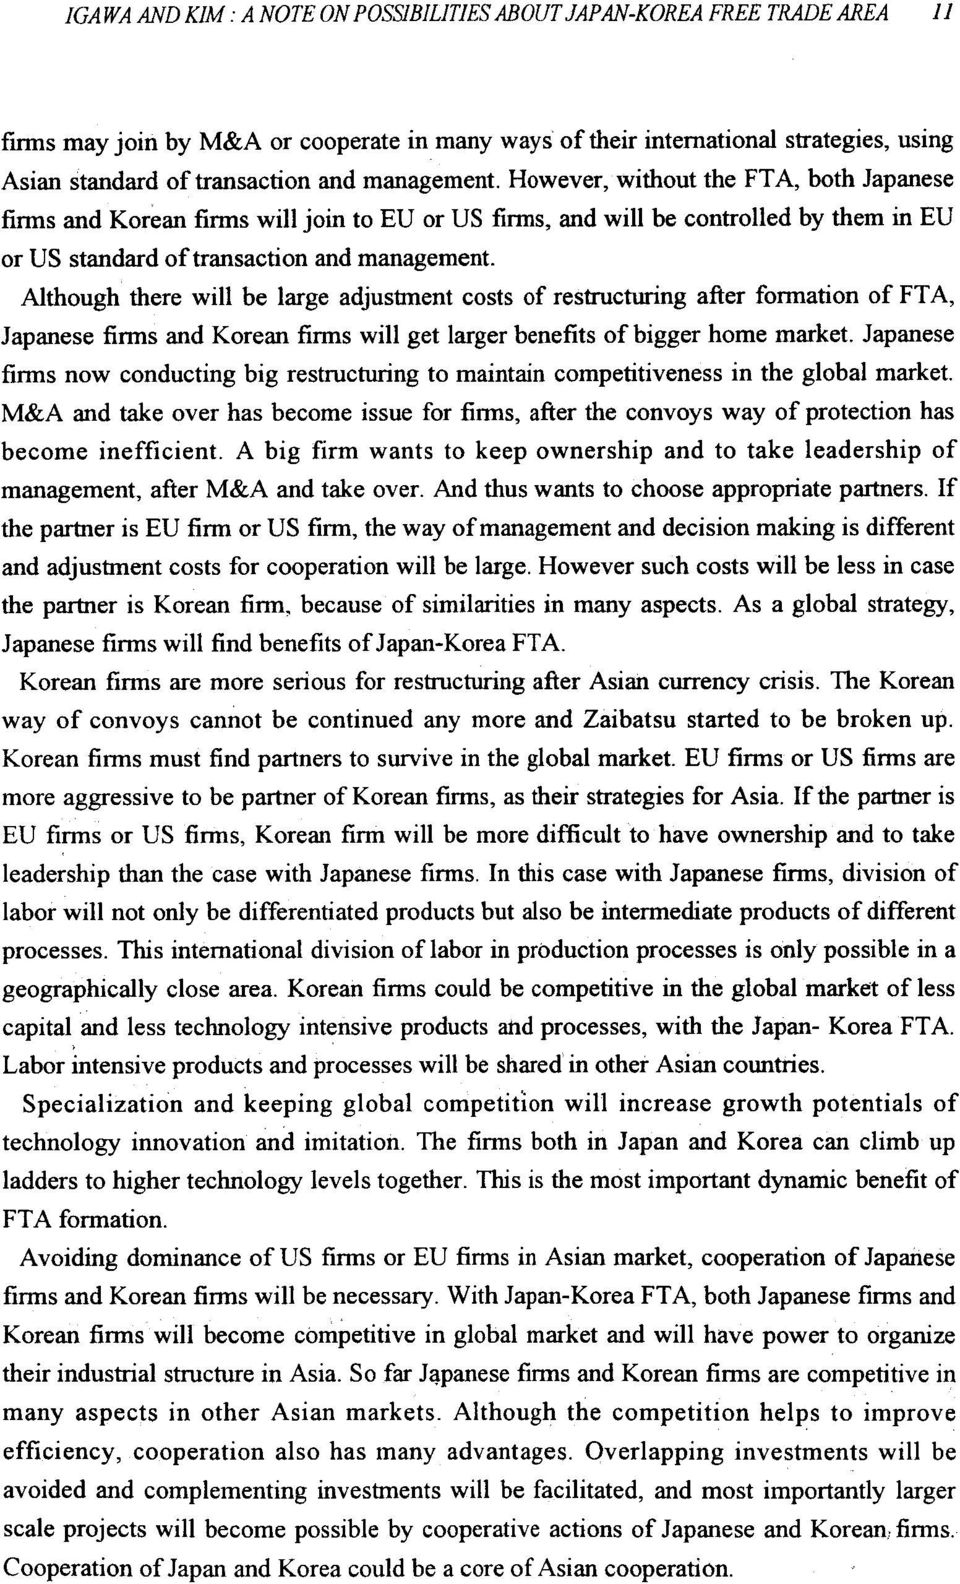 However, without the FTA, both Japanese firms and Korean fimis willjoin to EU or US firms, and will be controlled by them in EU or US standard oftransaction and management.